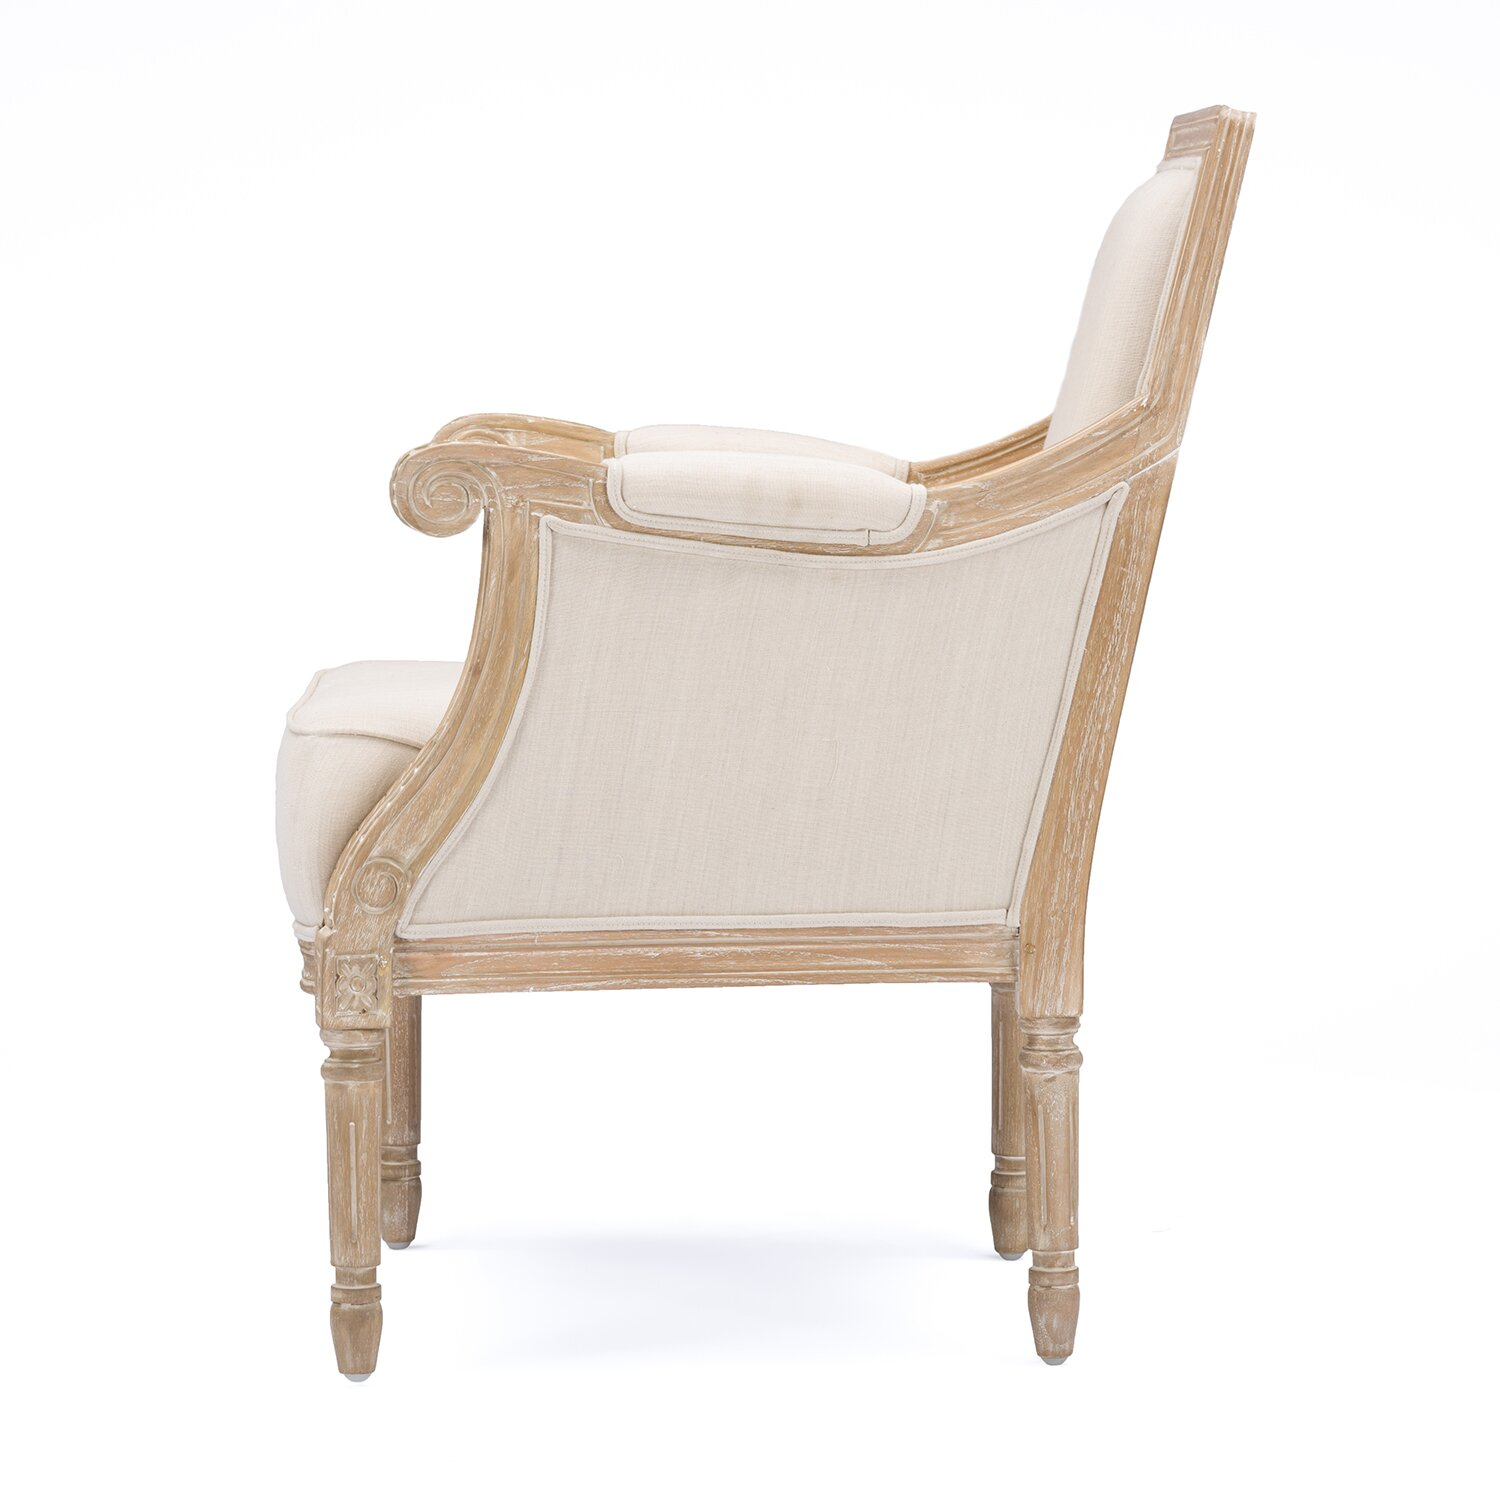 Wholesale interiors baxton studio arm chair reviews for Furniture wholesale